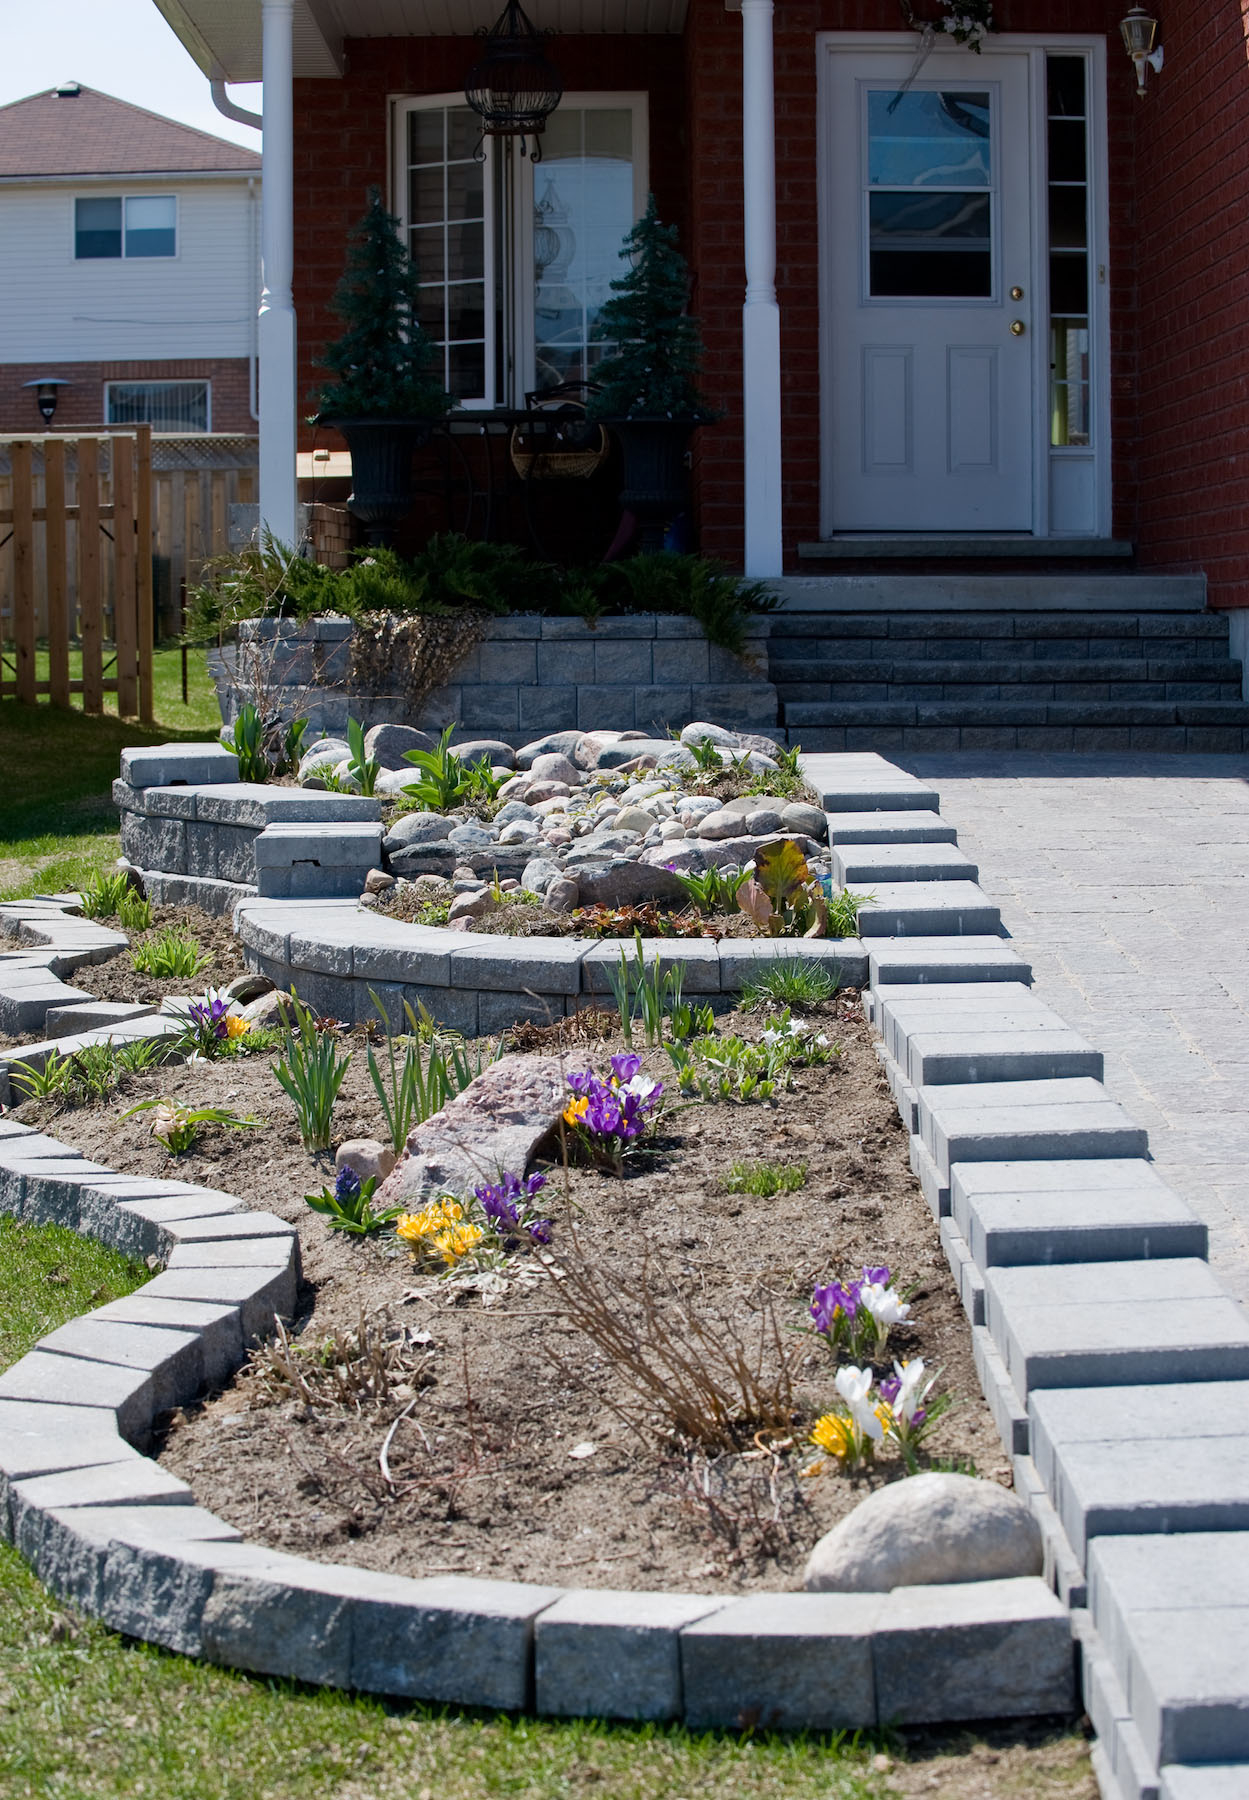 Top Featured Landscaping & Lawn Care in Redding CA